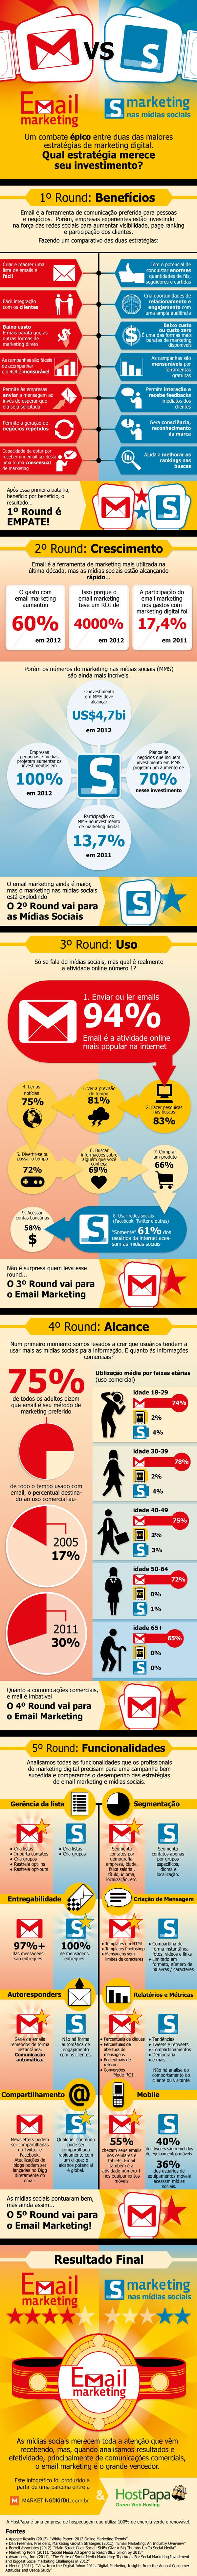 diferença entre email marketing e socialmedia